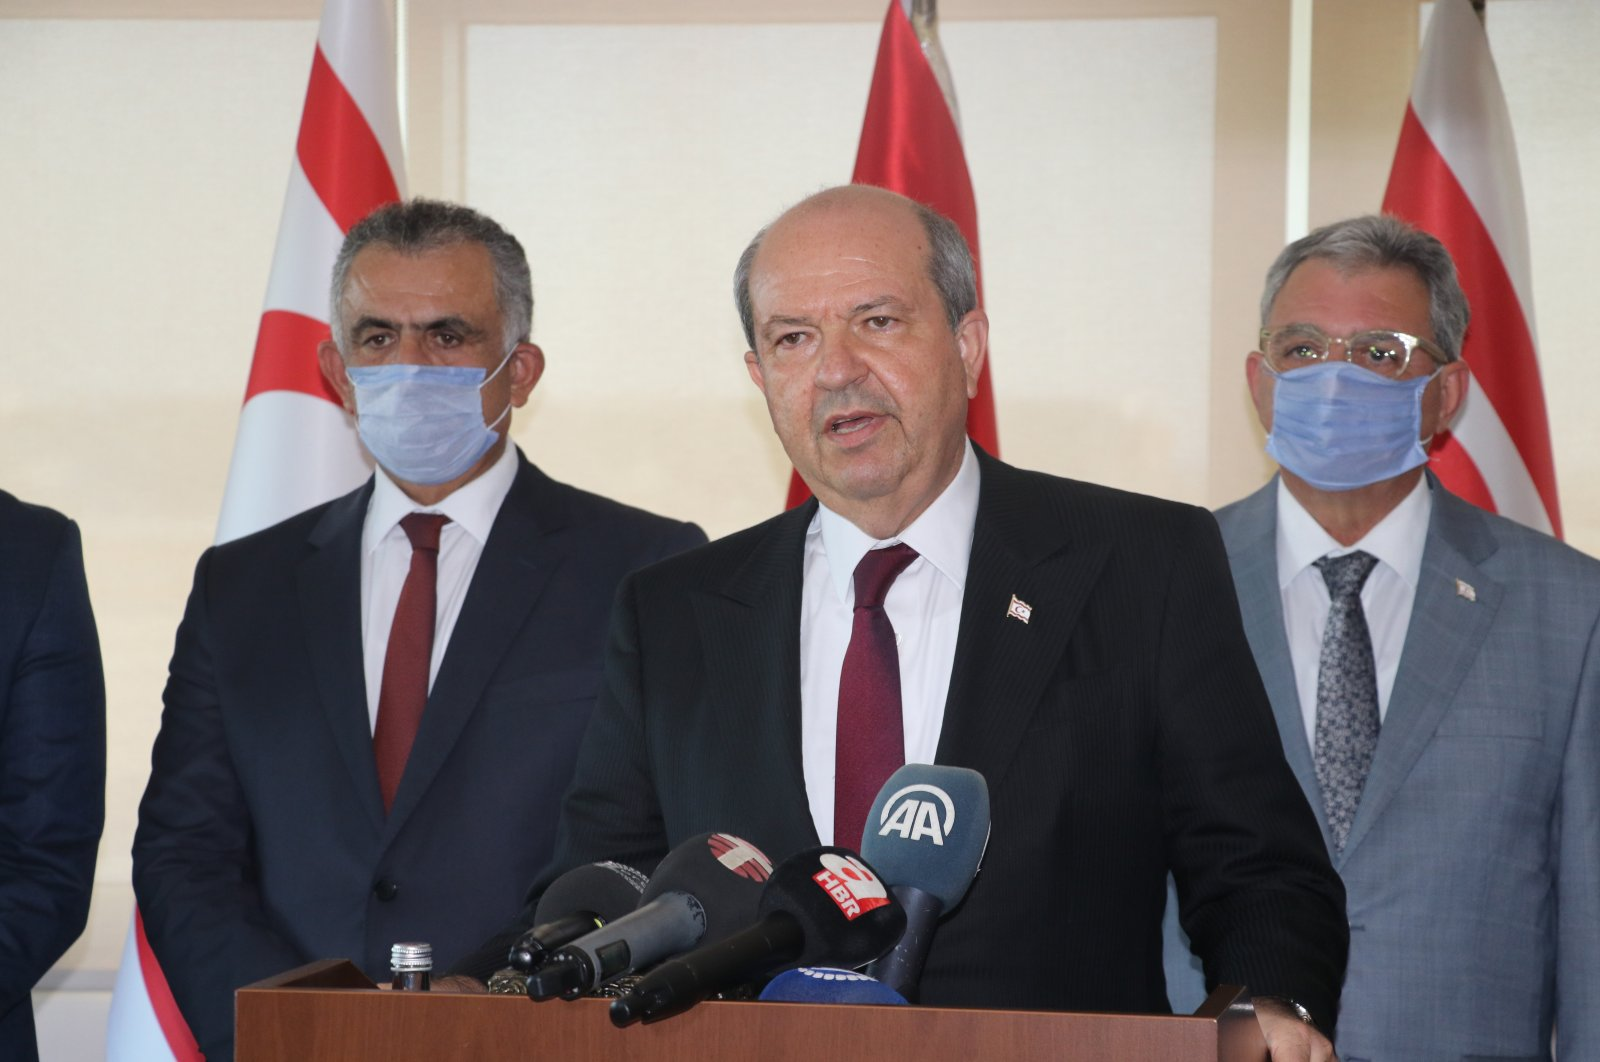 TRNC PM Ersin Tatar (C) gives a press conference in Nicosia's Ercan International Airport after returning to the island of Cyprus after official talks in Turkey, Aug. 5, 2020 (AA Photo)